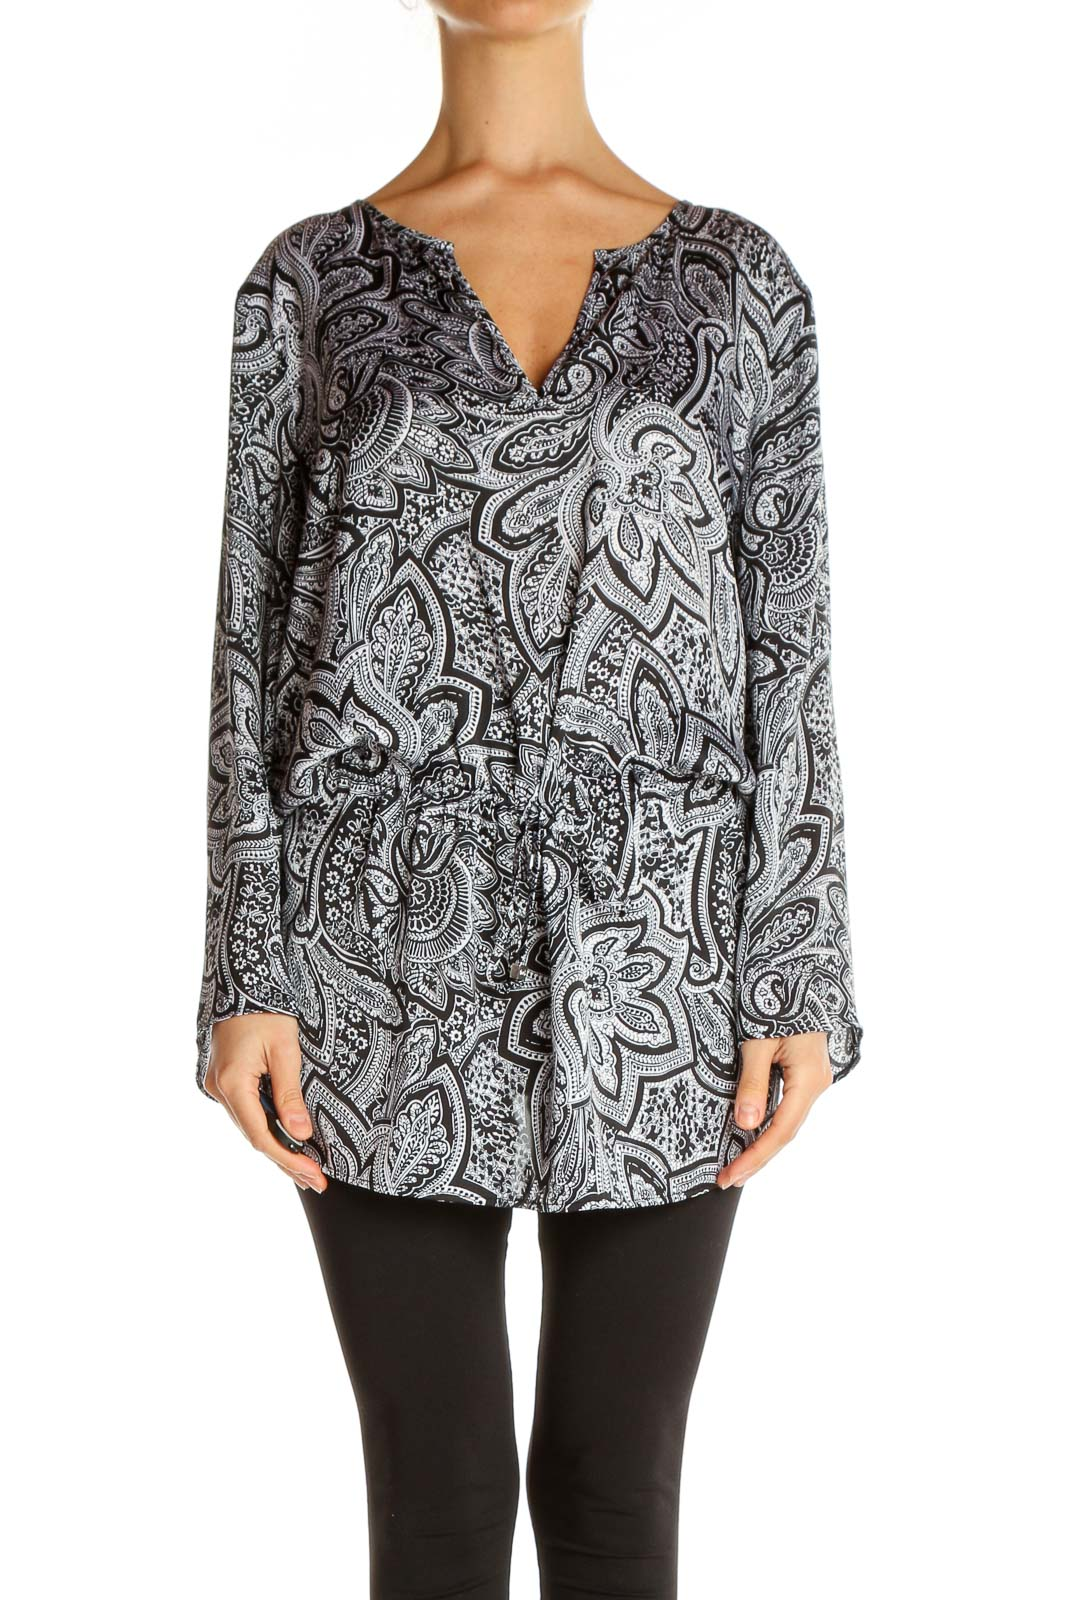 Gray Paisley All Day Wear Blouse Front